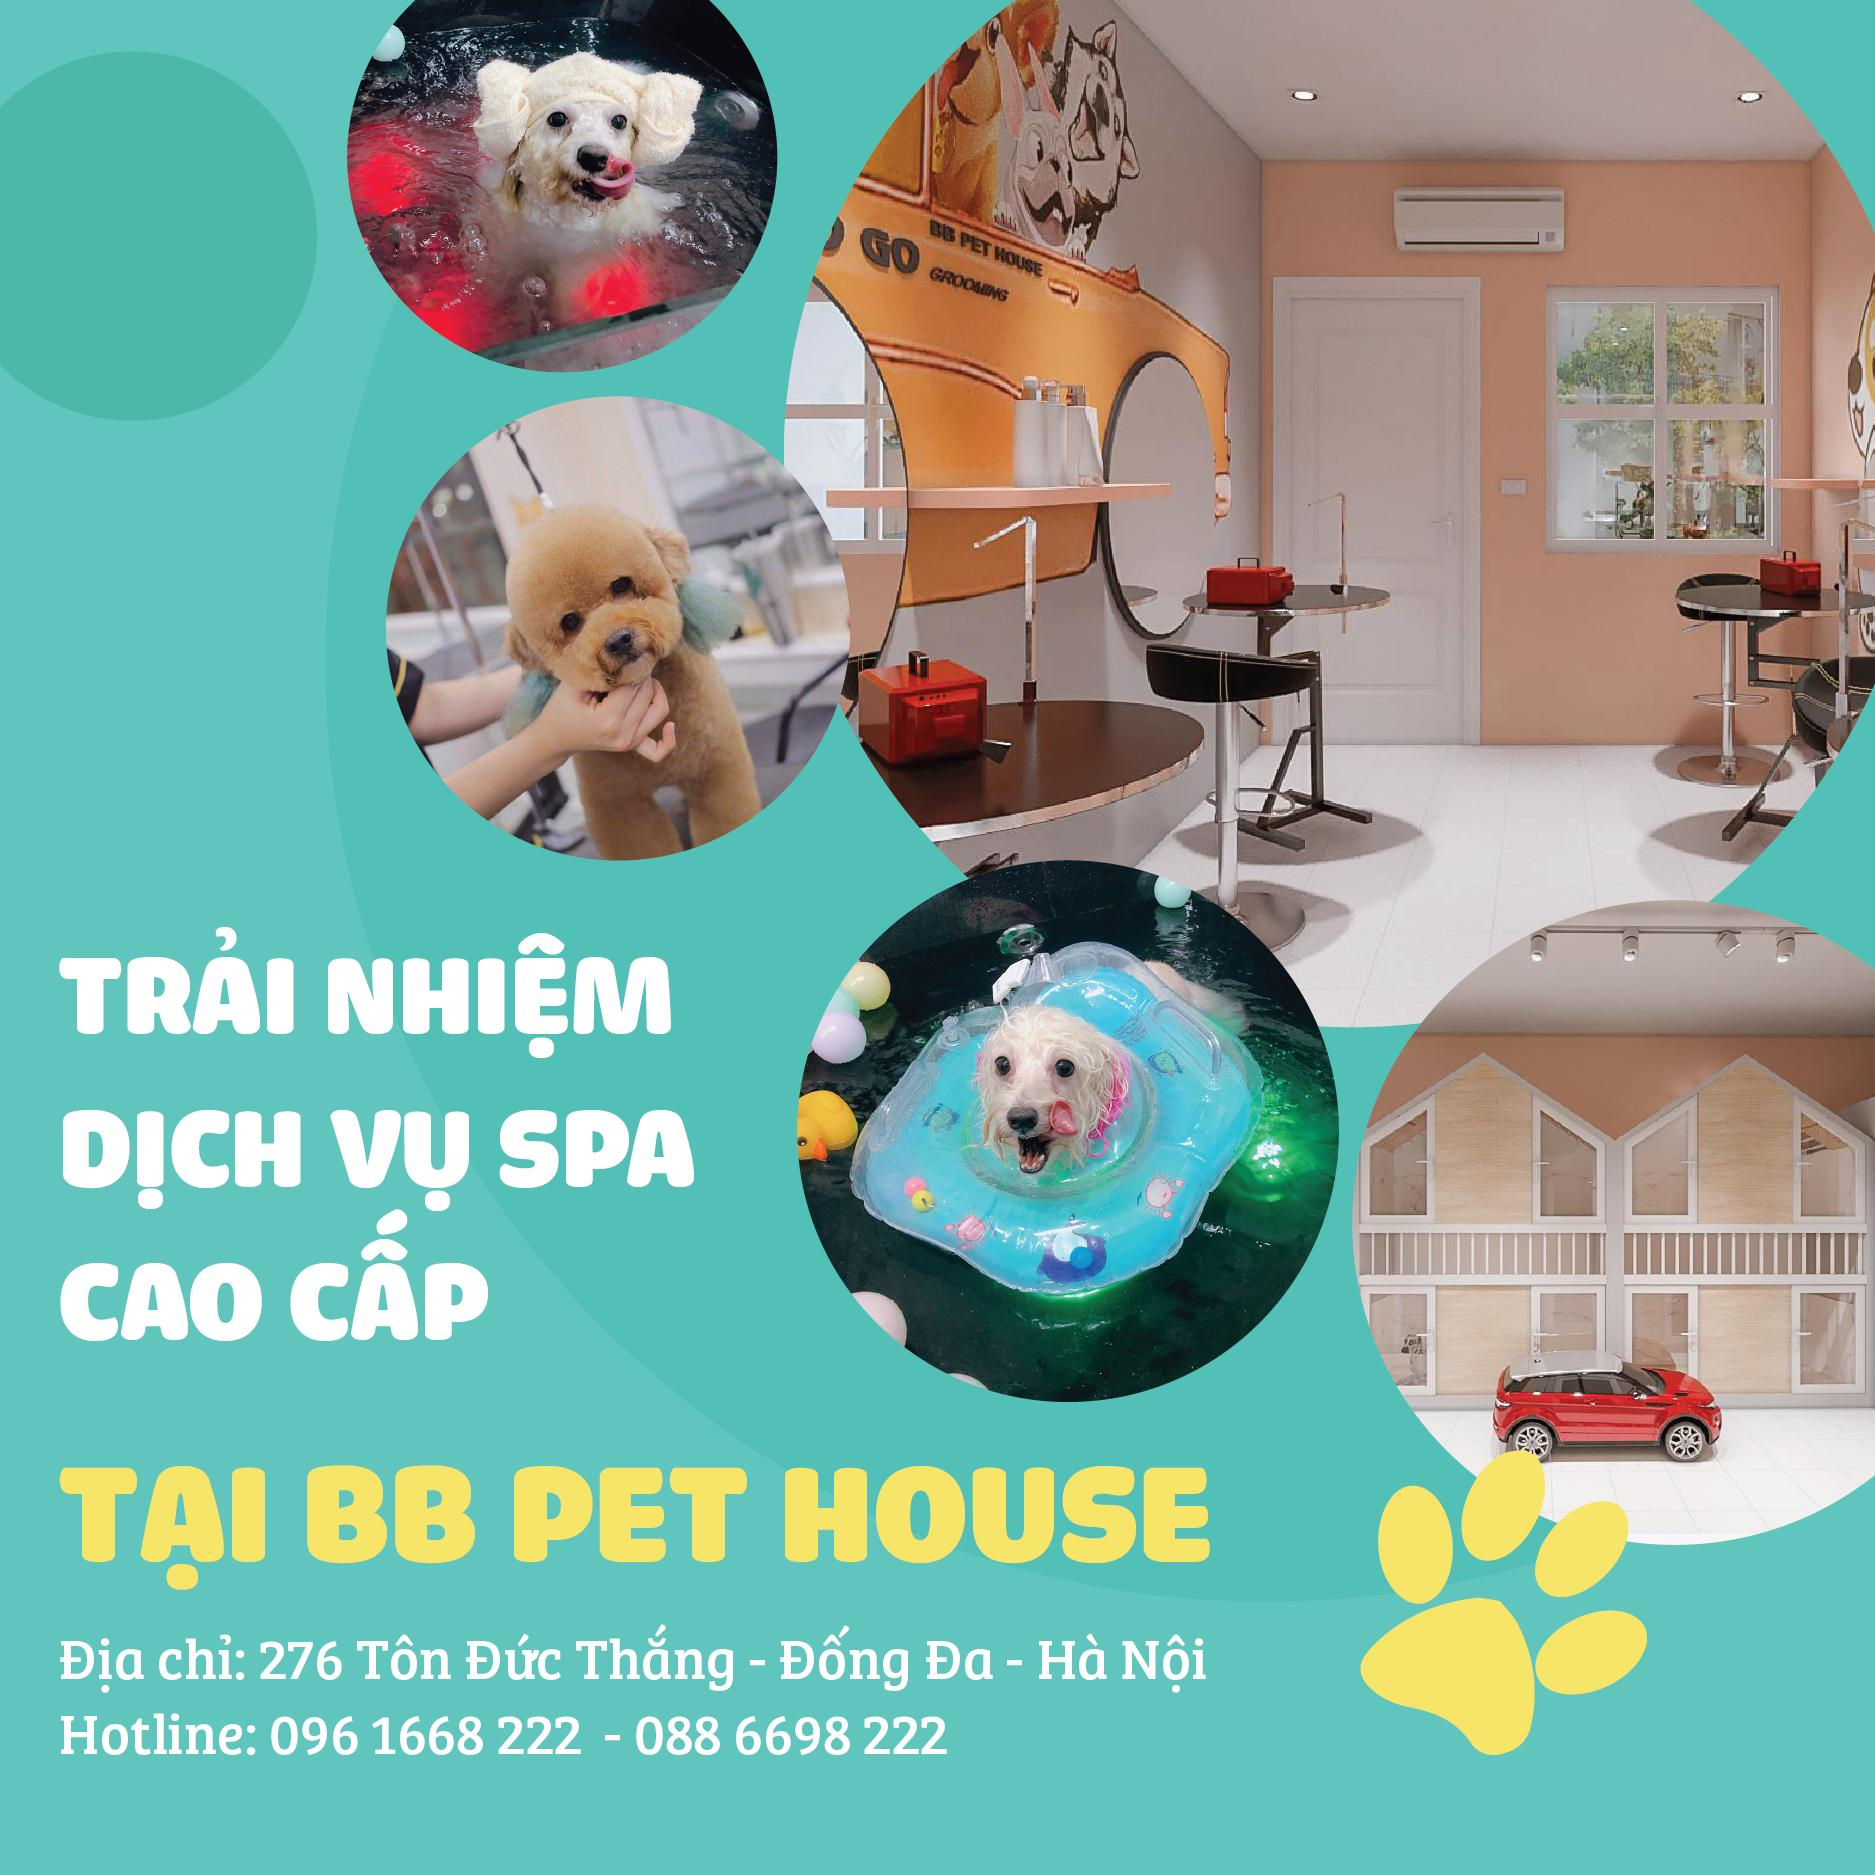 BB PET HOUSE